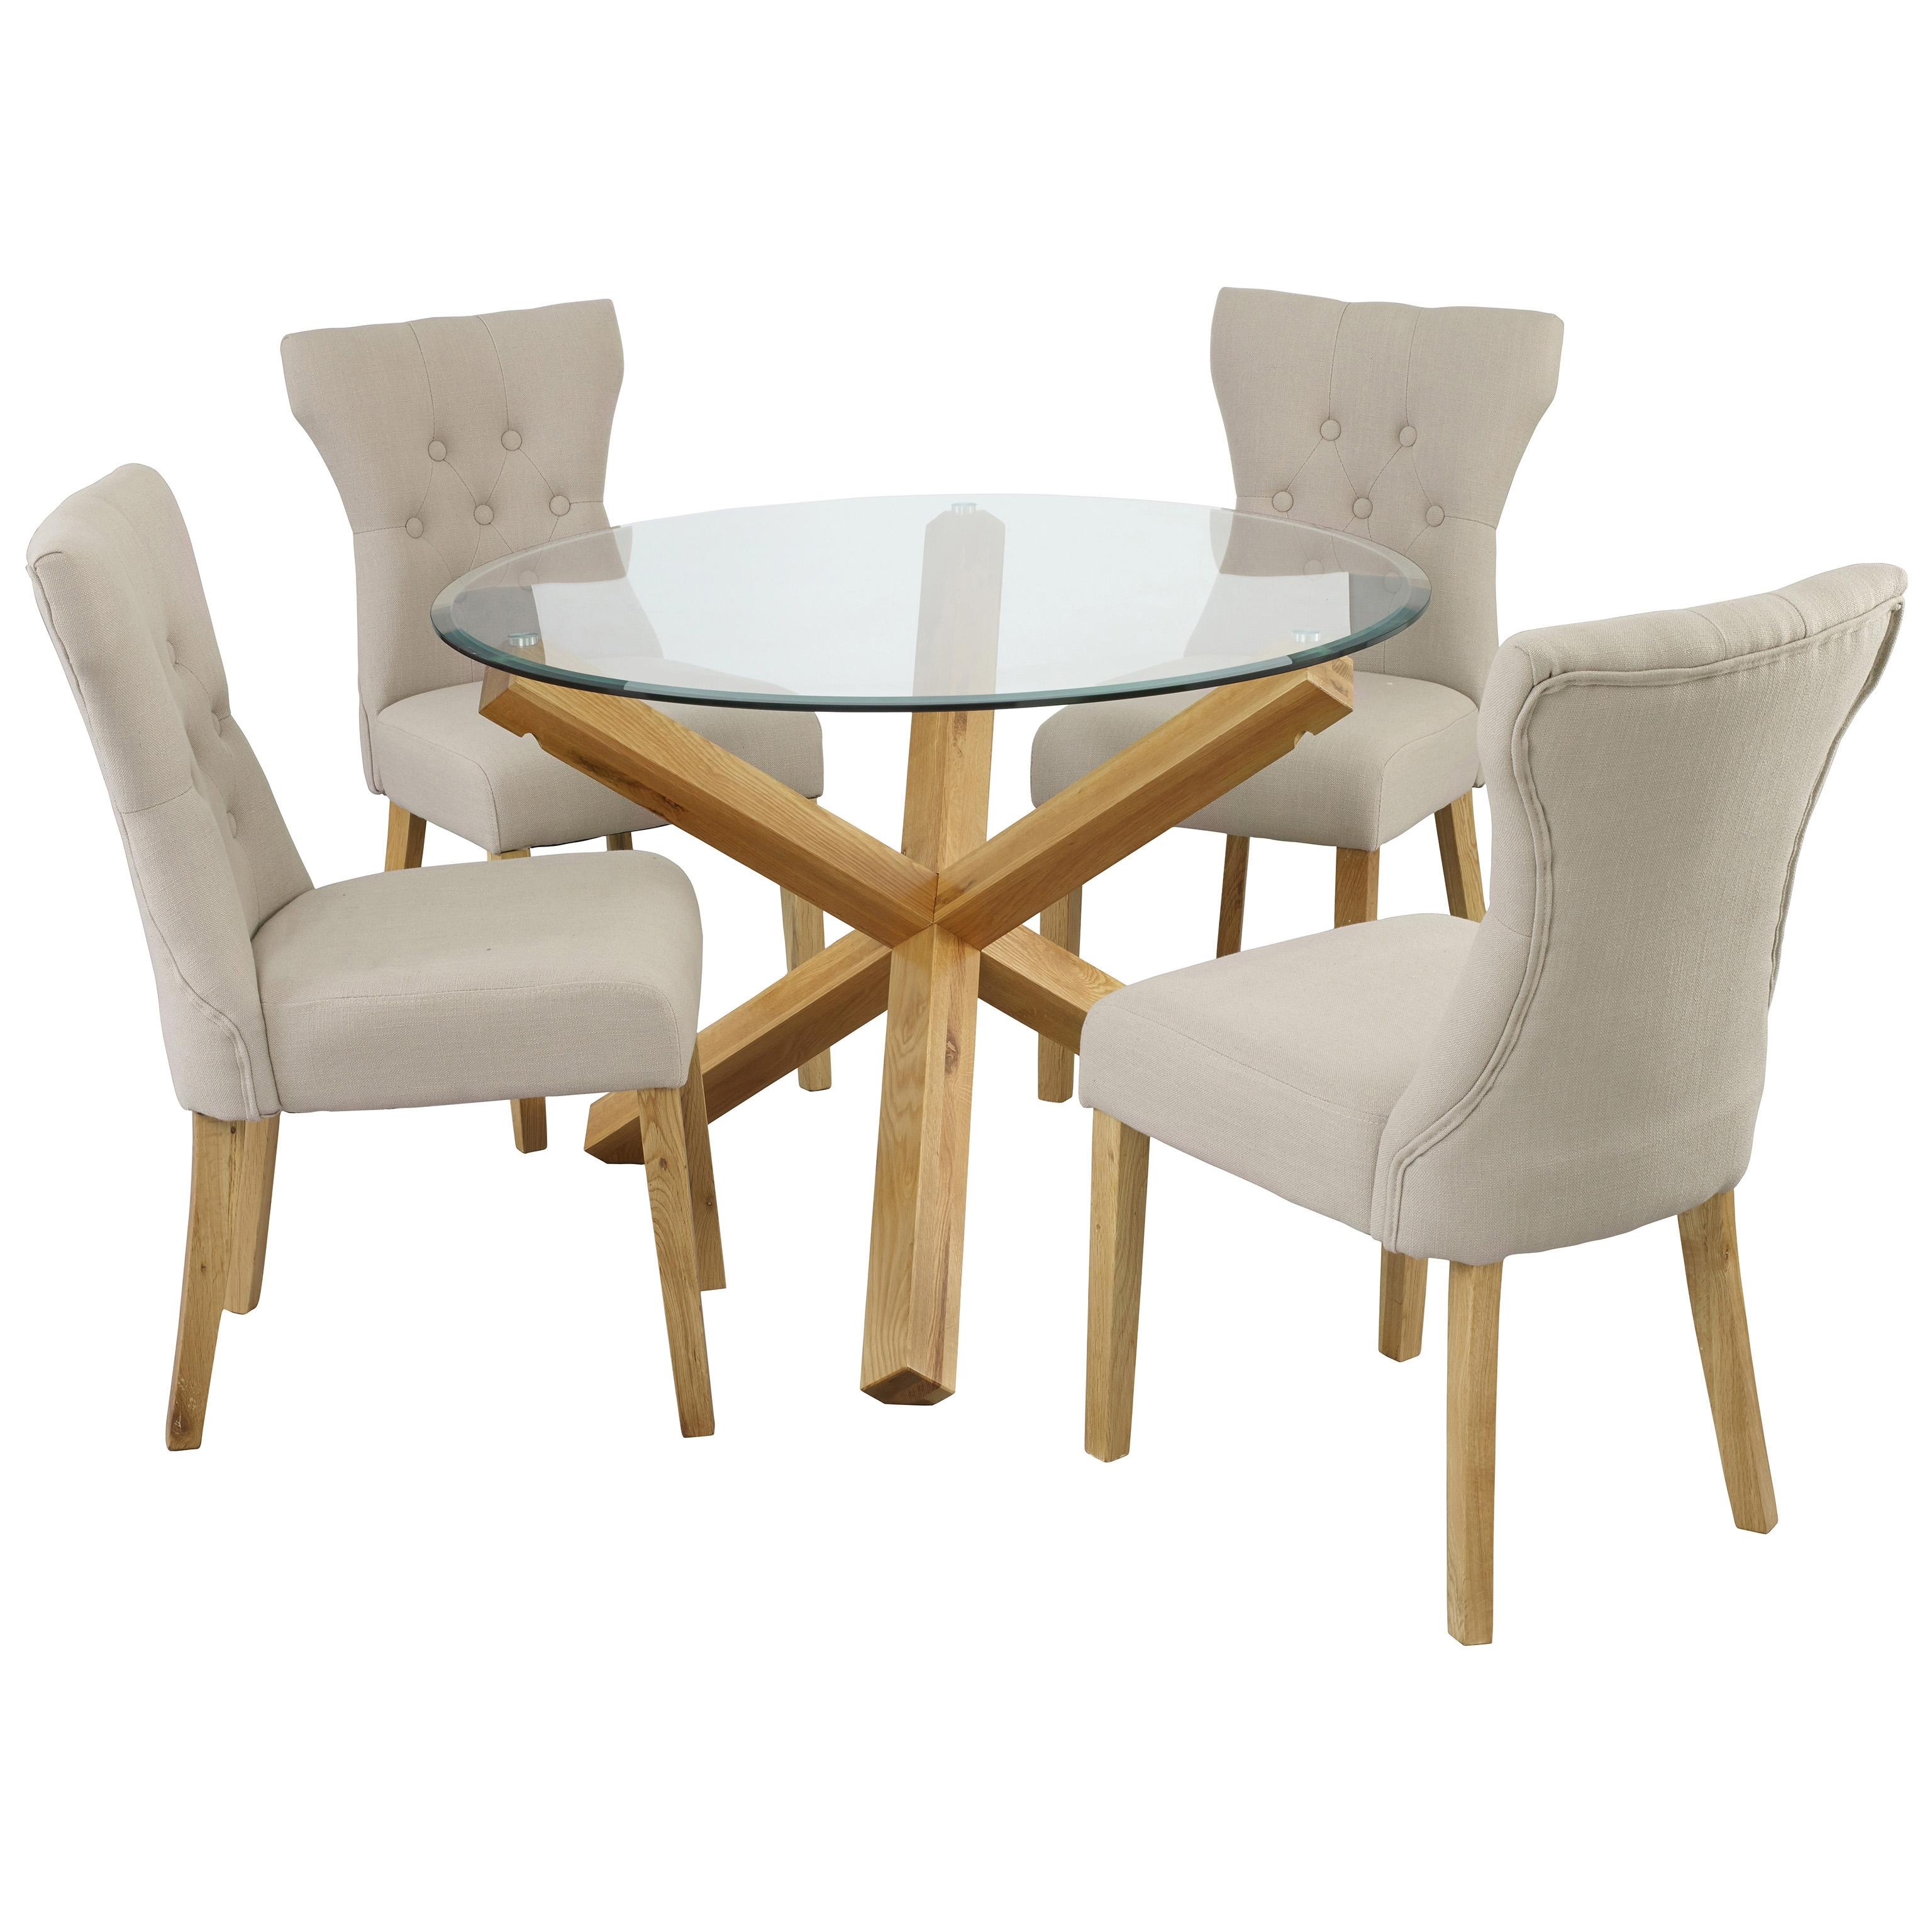 Oak & Glass Round Dining Table And Chair Set With 4 Fabric Seats Pertaining To Fashionable Oak Dining Tables With 6 Chairs (View 10 of 25)